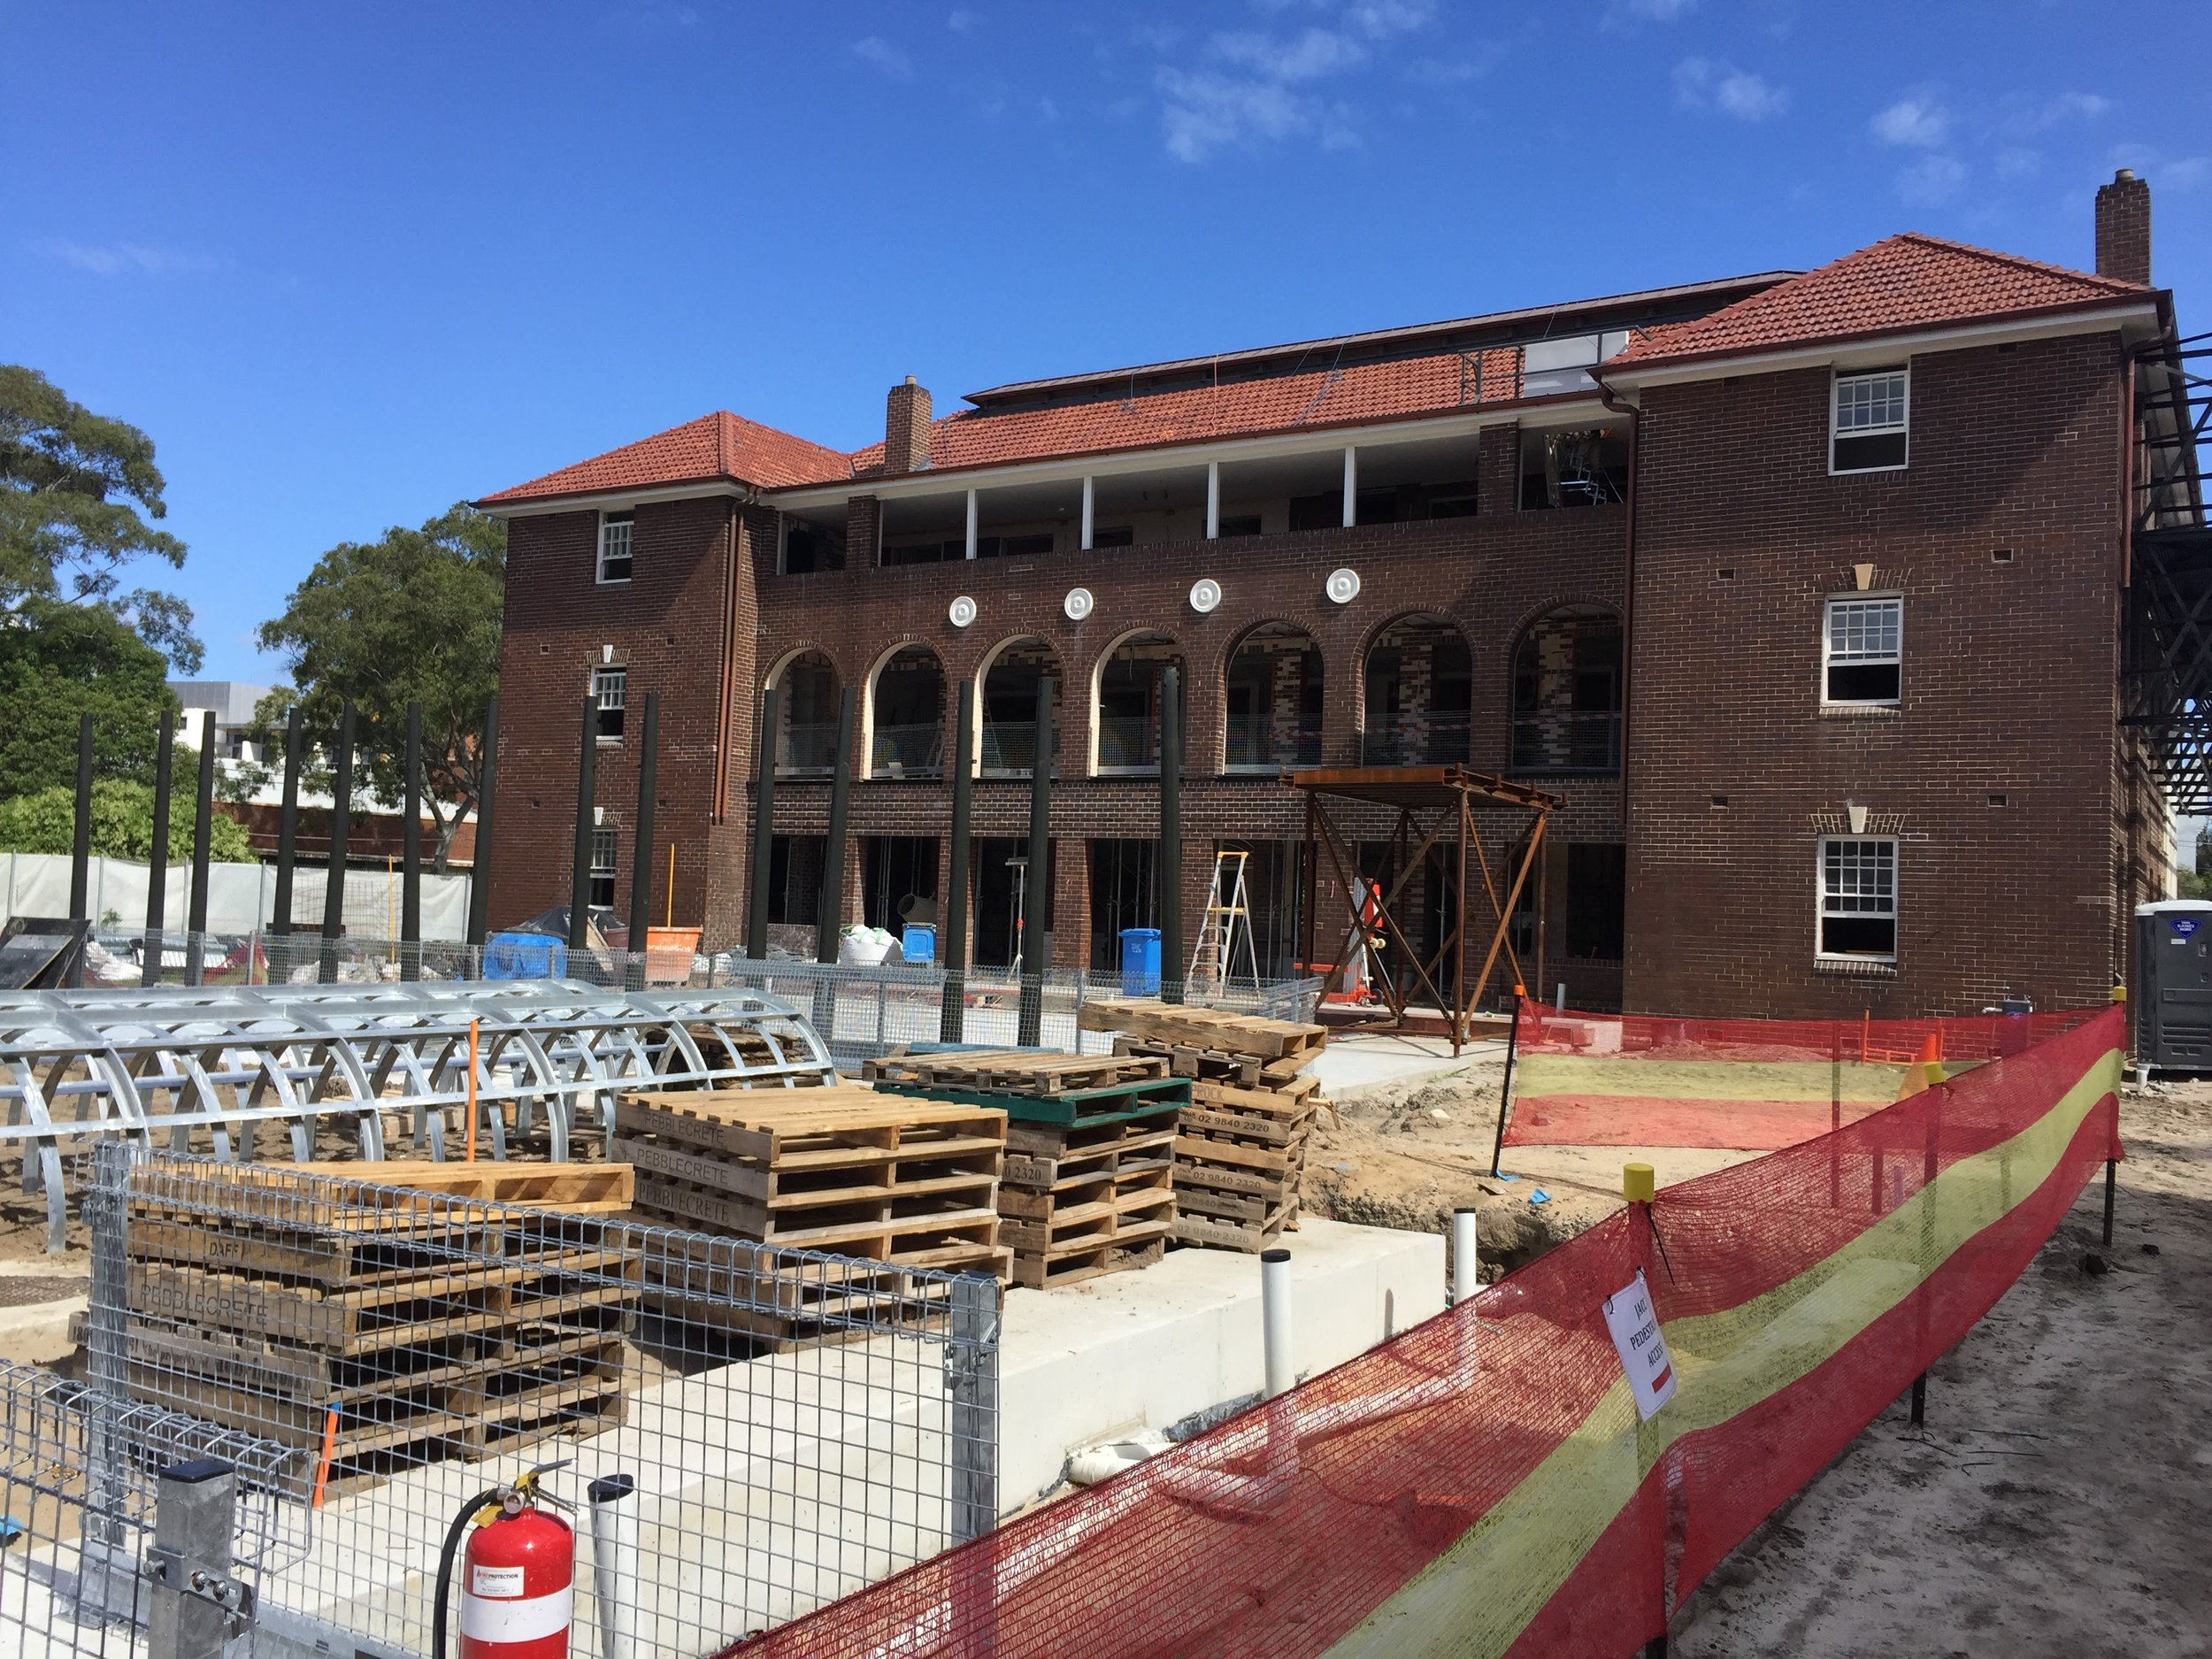 The Esme Cahill Building is being transformed into the  Joynton Avenue Creative Centre